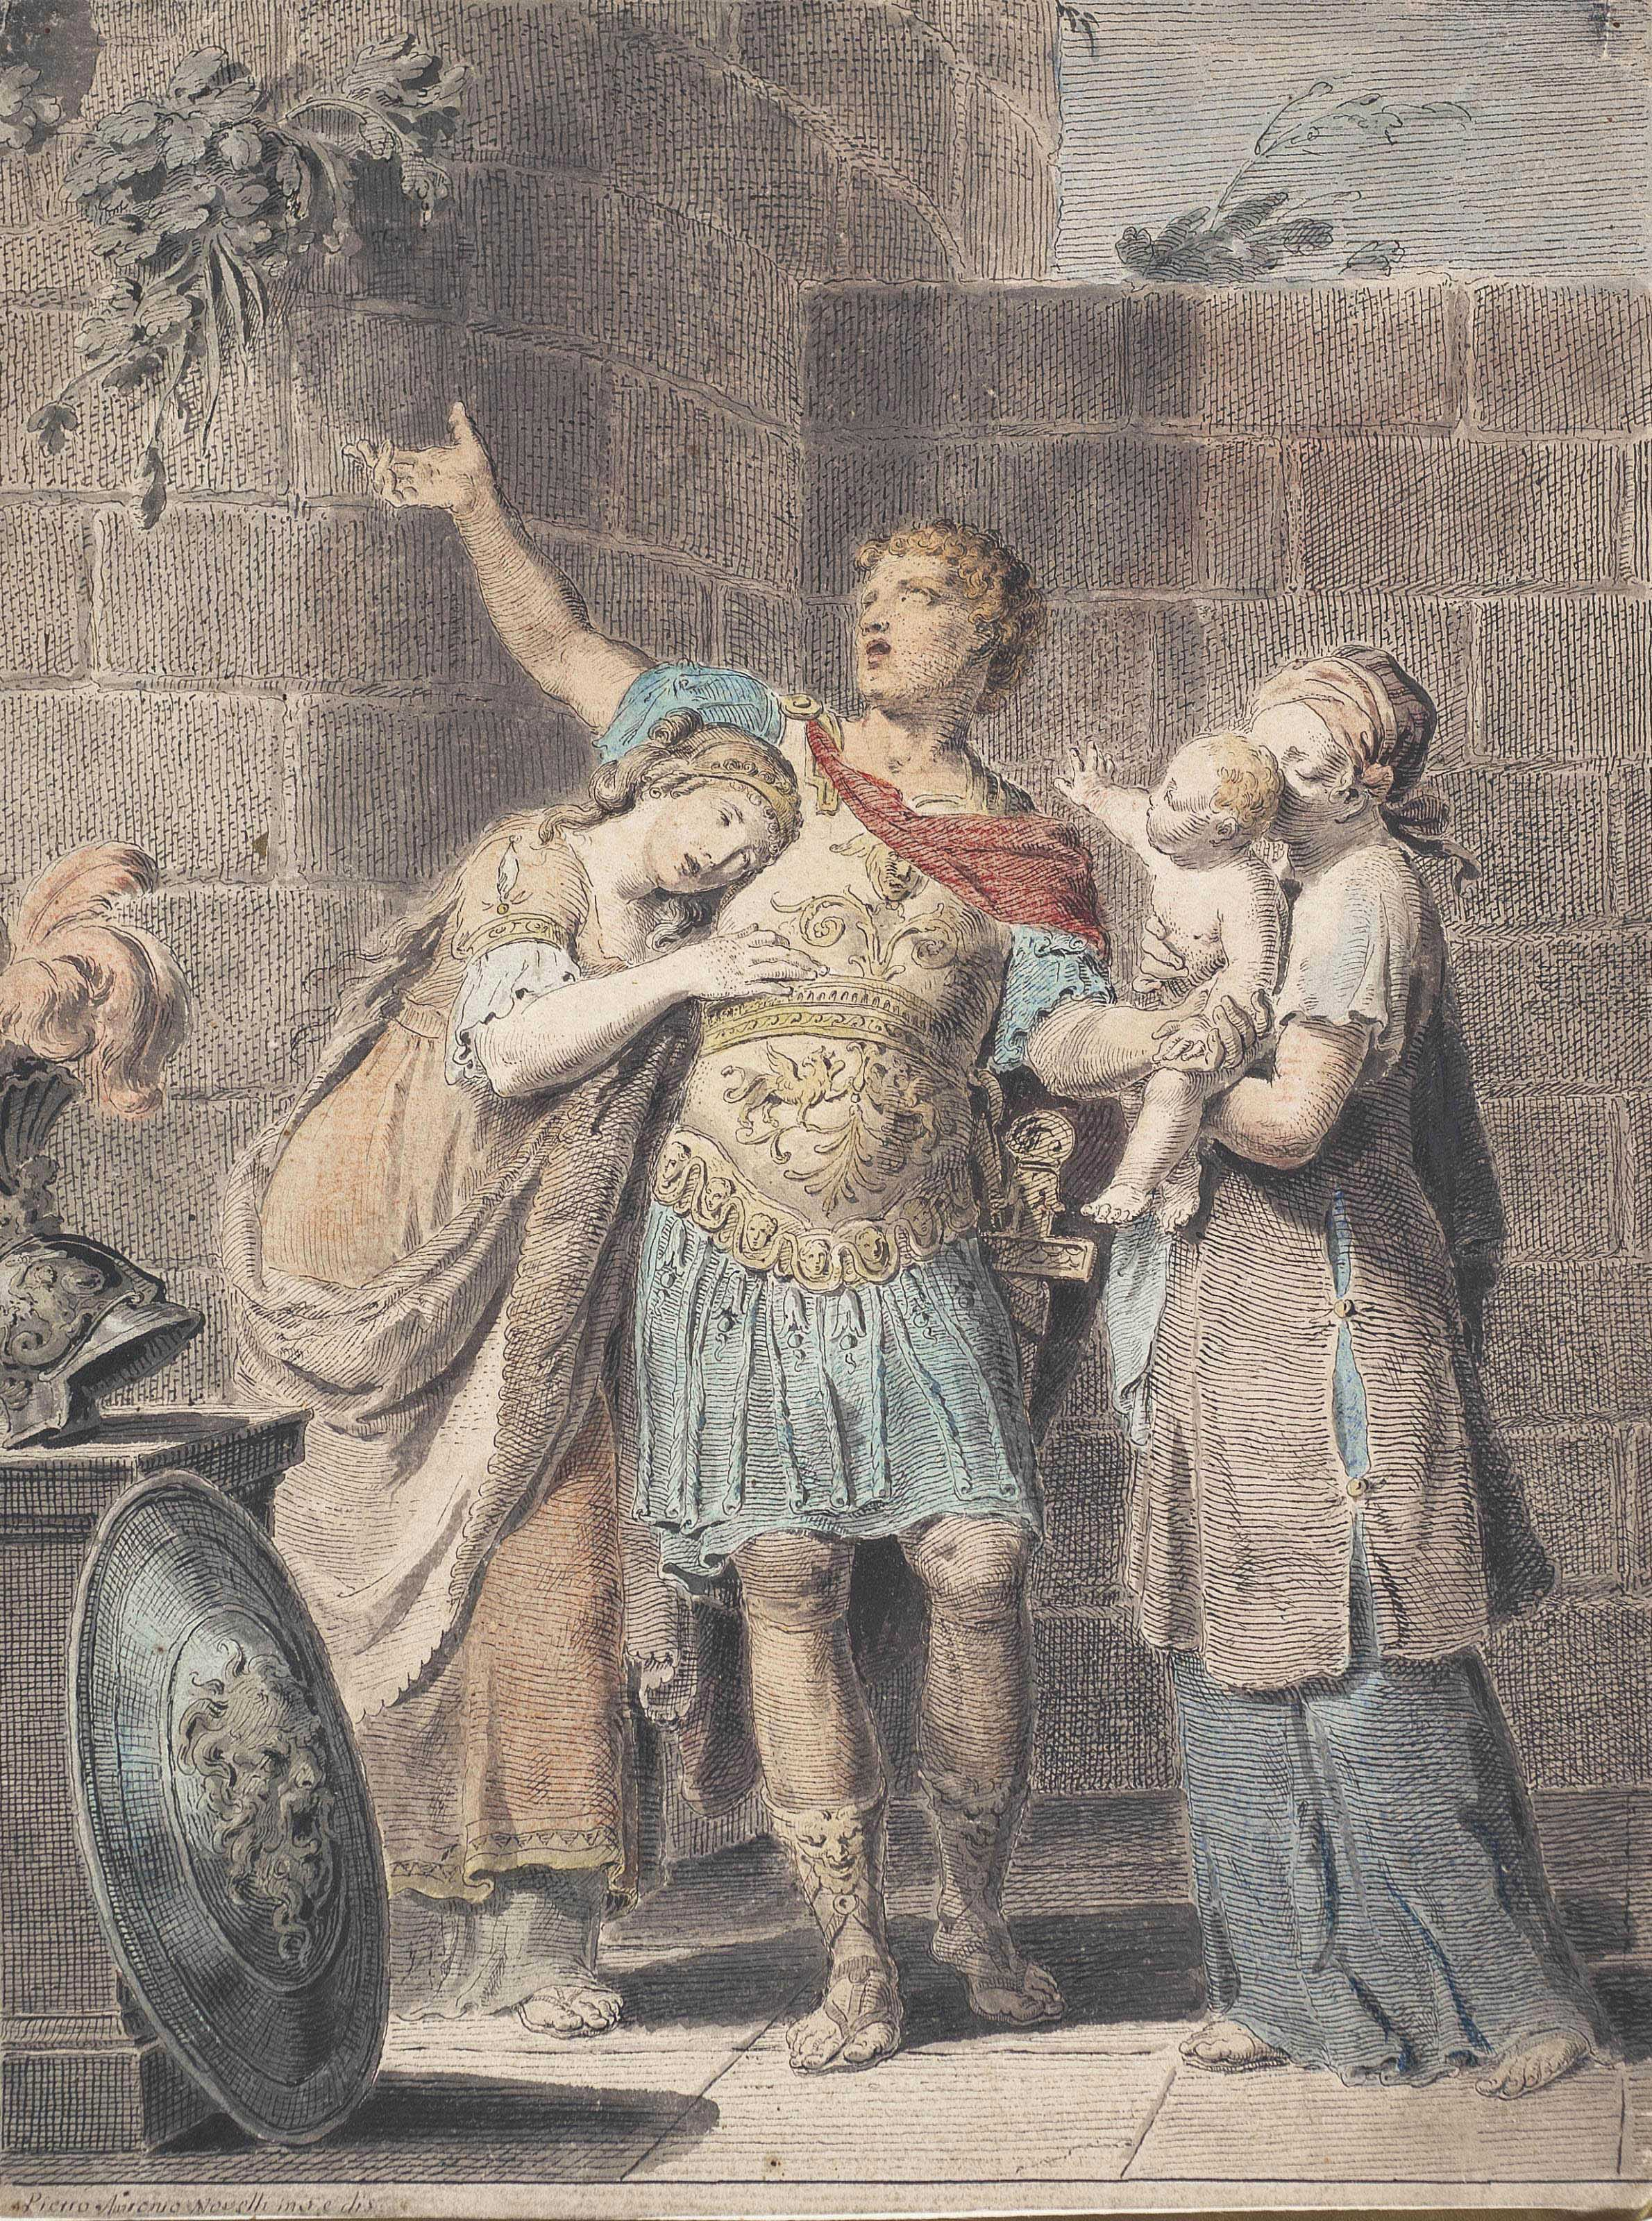 Hector parting from Andromache and Astyanax